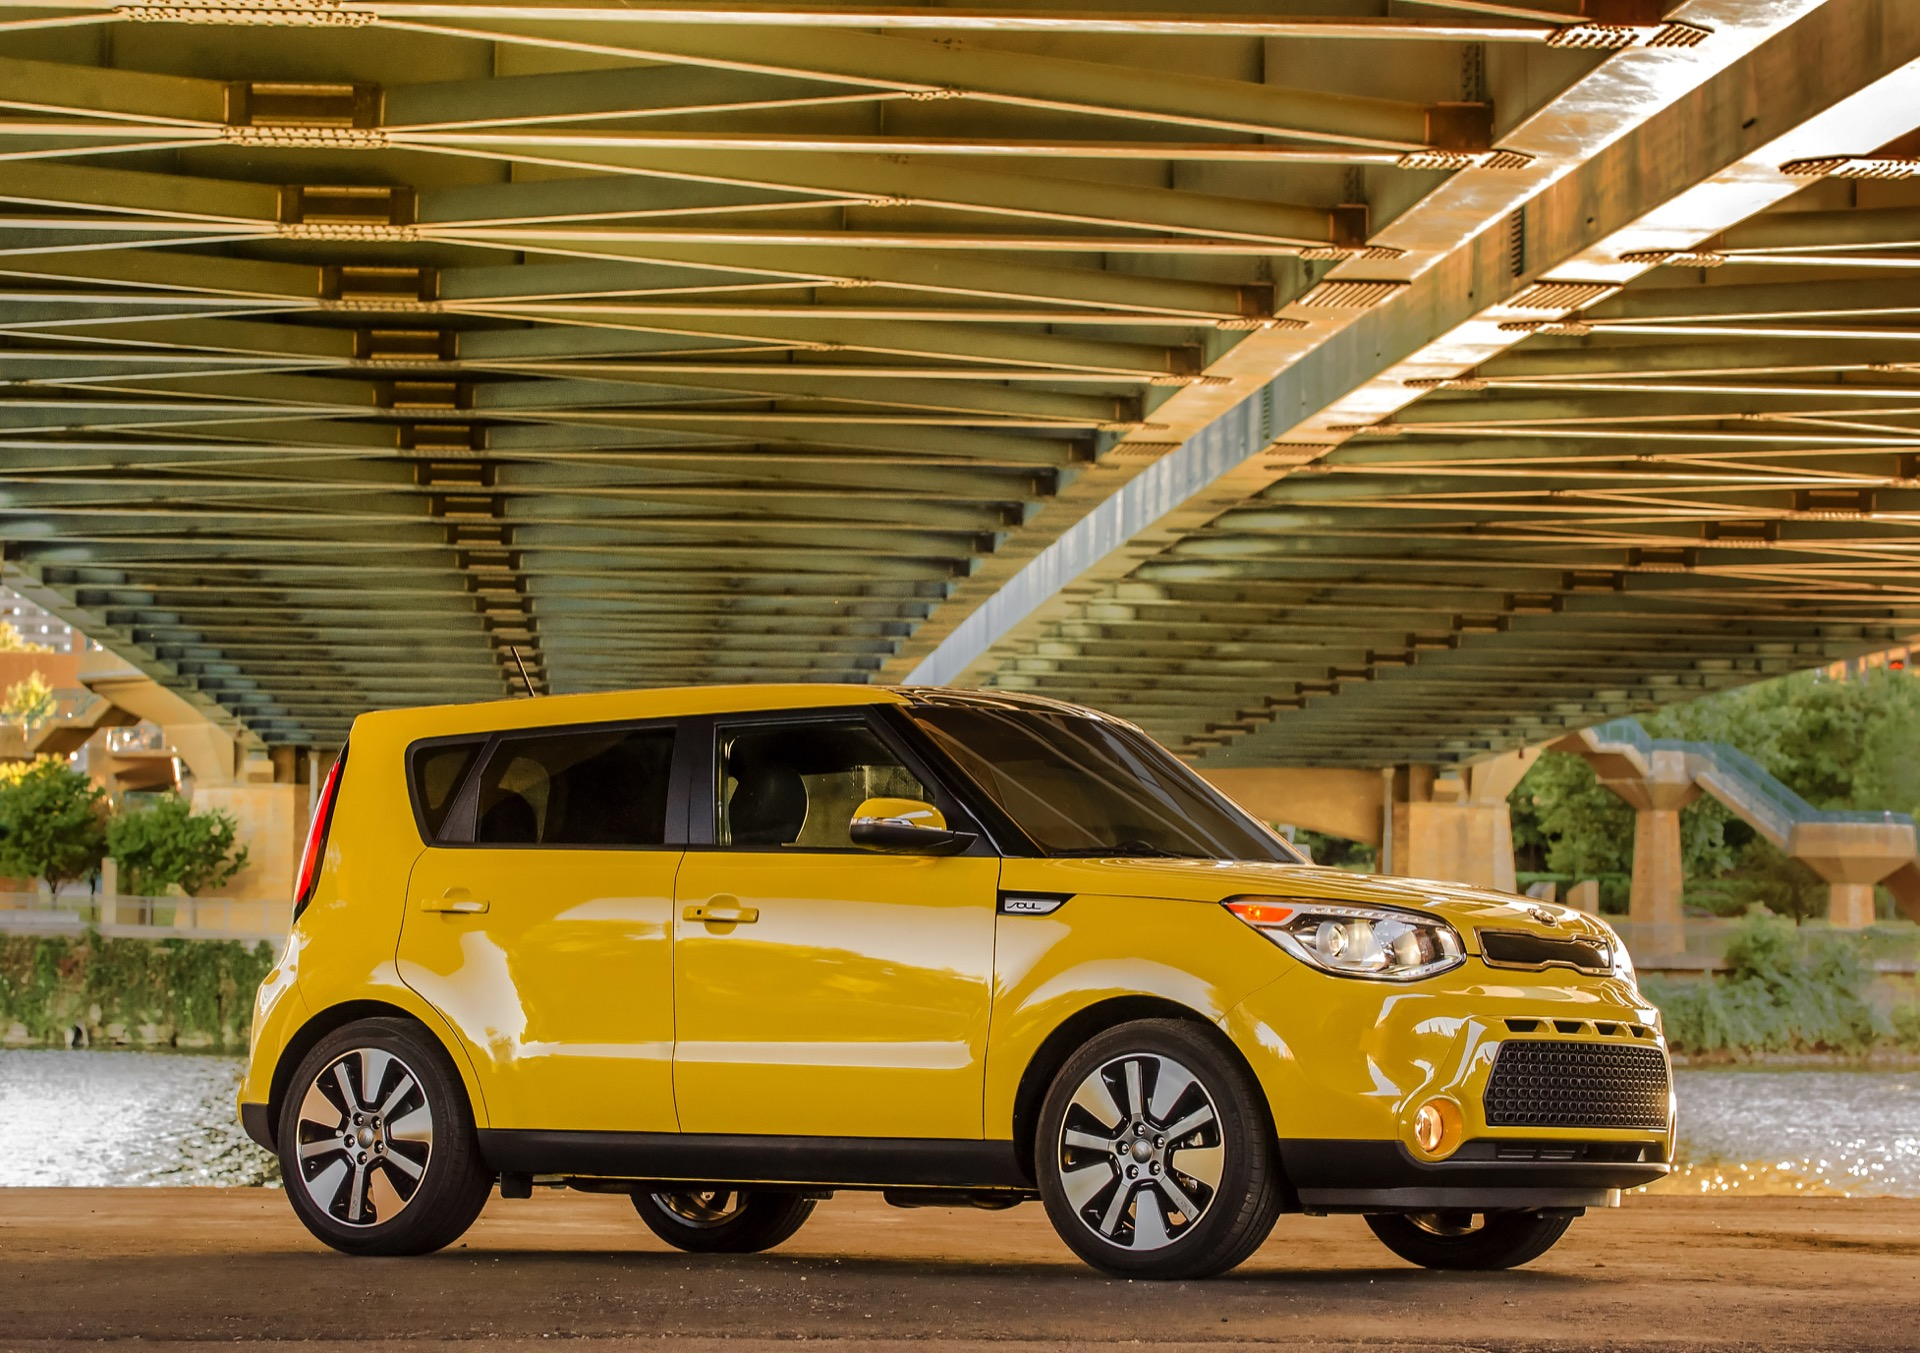 2017 2016 Kia Soul Ev Recalled For Steering Problem Over 256 000 Vehicles Affected